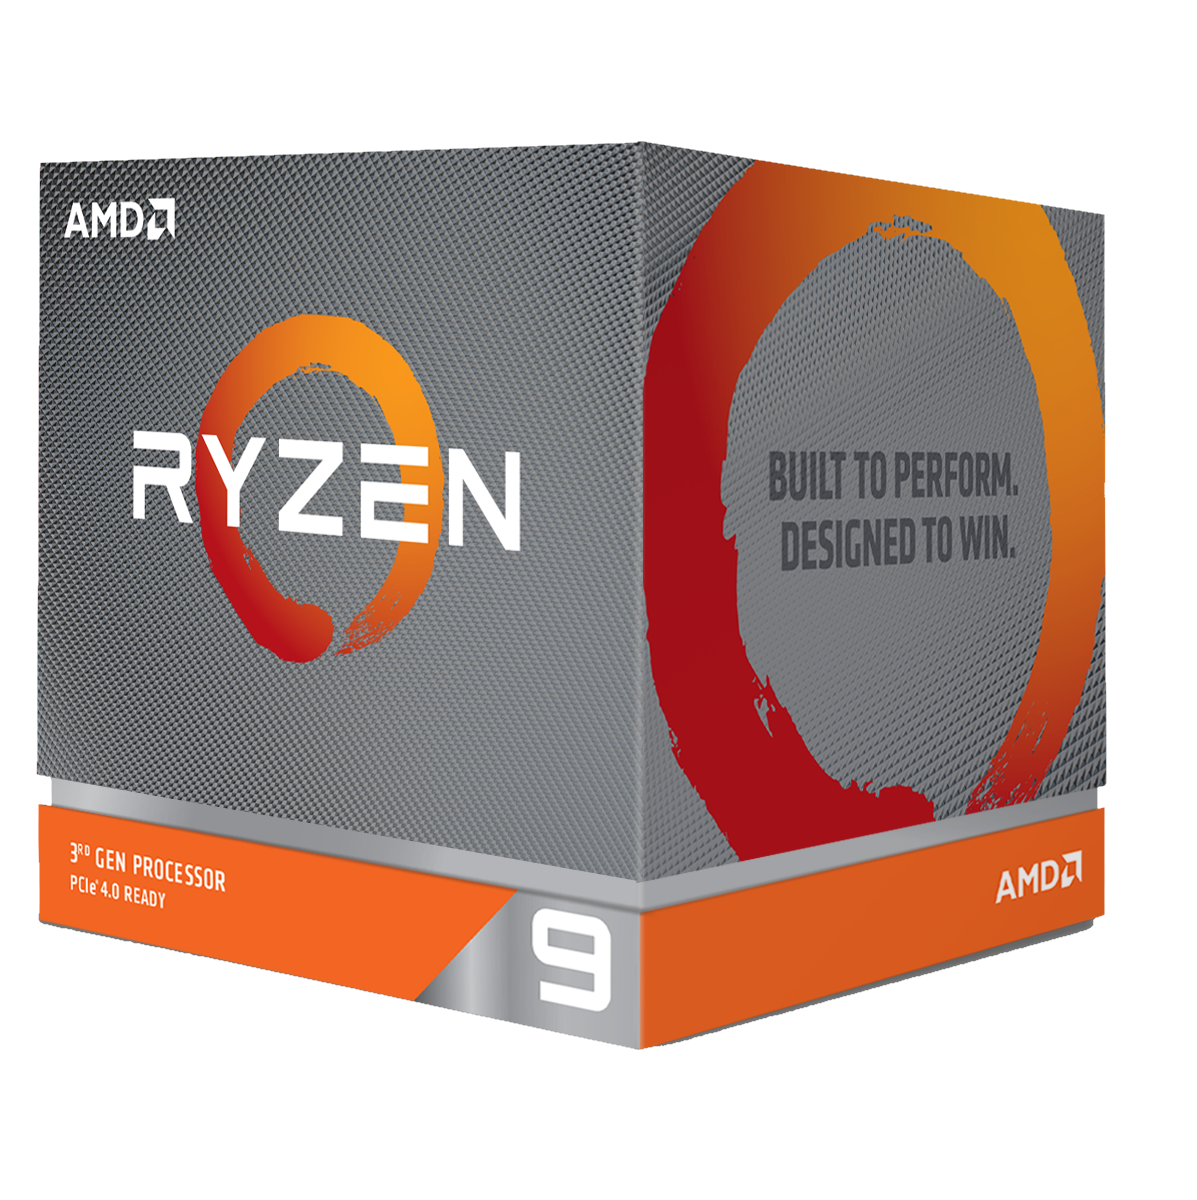 BW Q4 Black WEEK Q4 Hardware Deals AMD